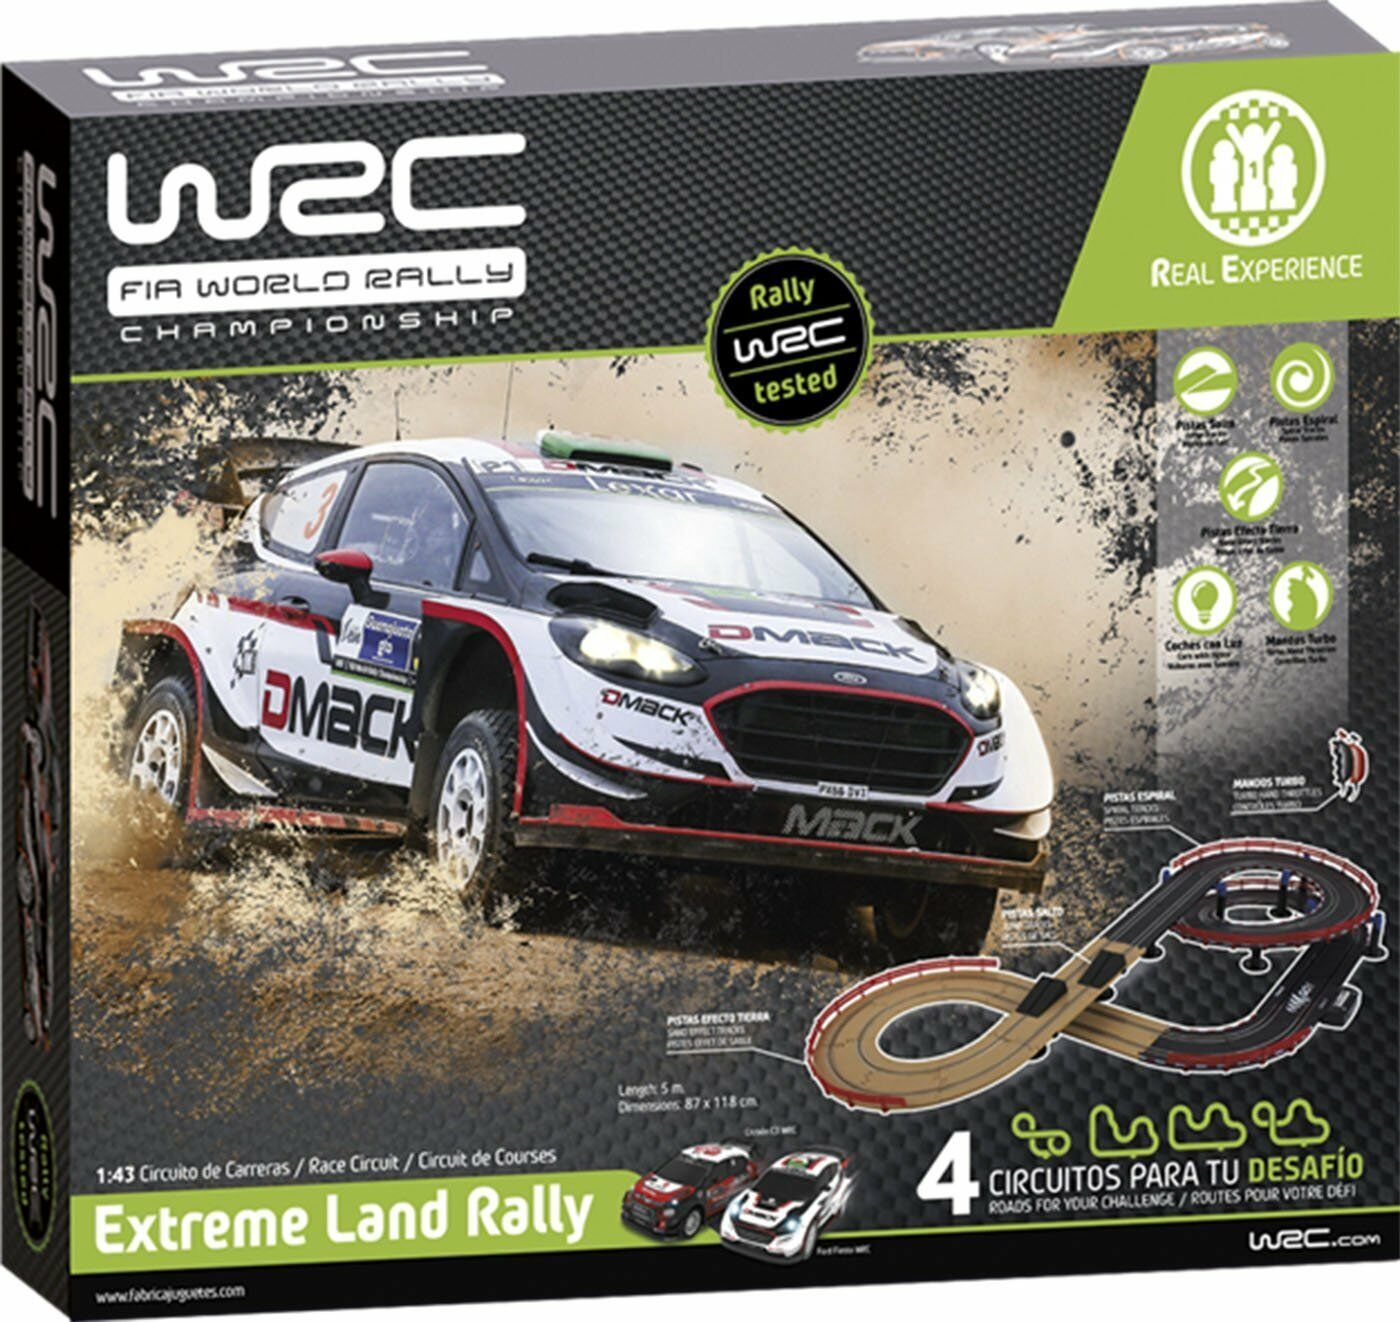 Fabricating of Toys 91001. Circuit scale 1 43 WRC Extreme Land Rally